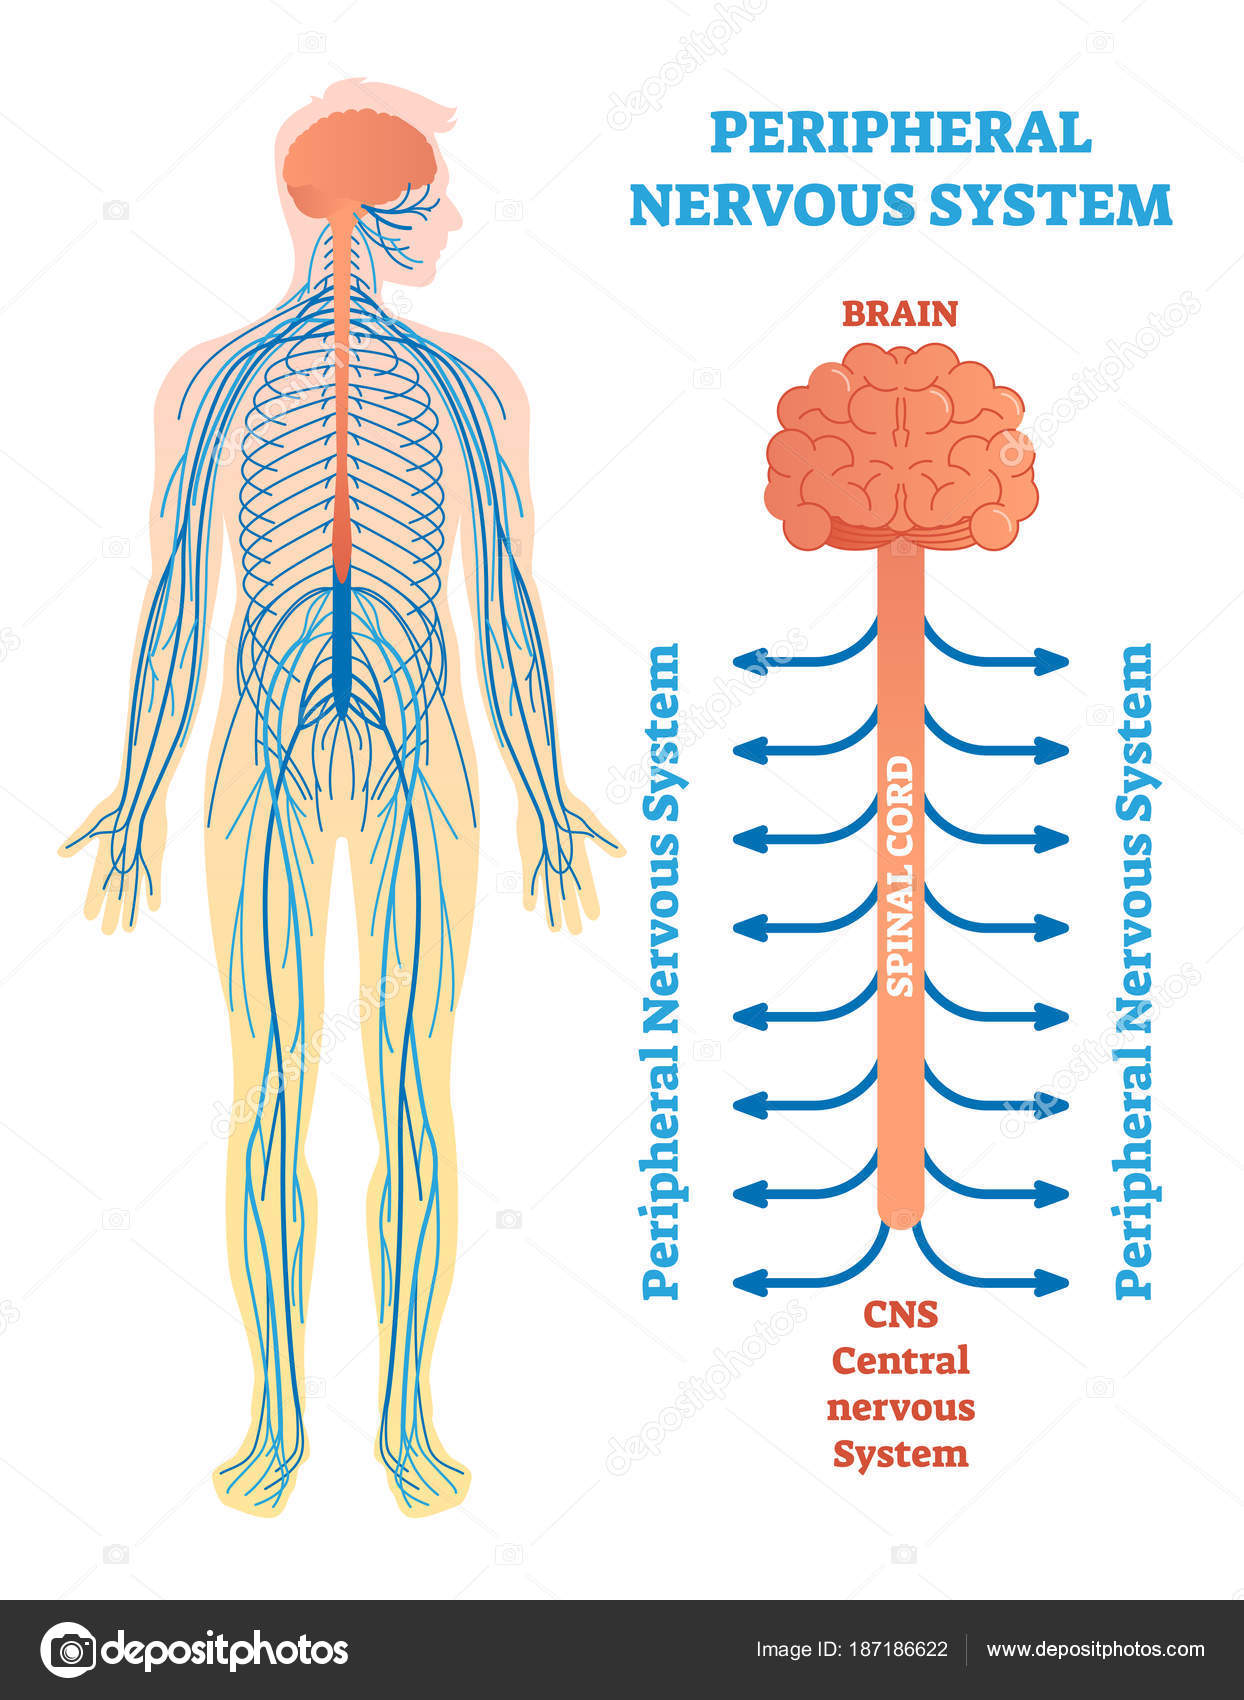 peripheral nervous system, medical vector illustration diagram with